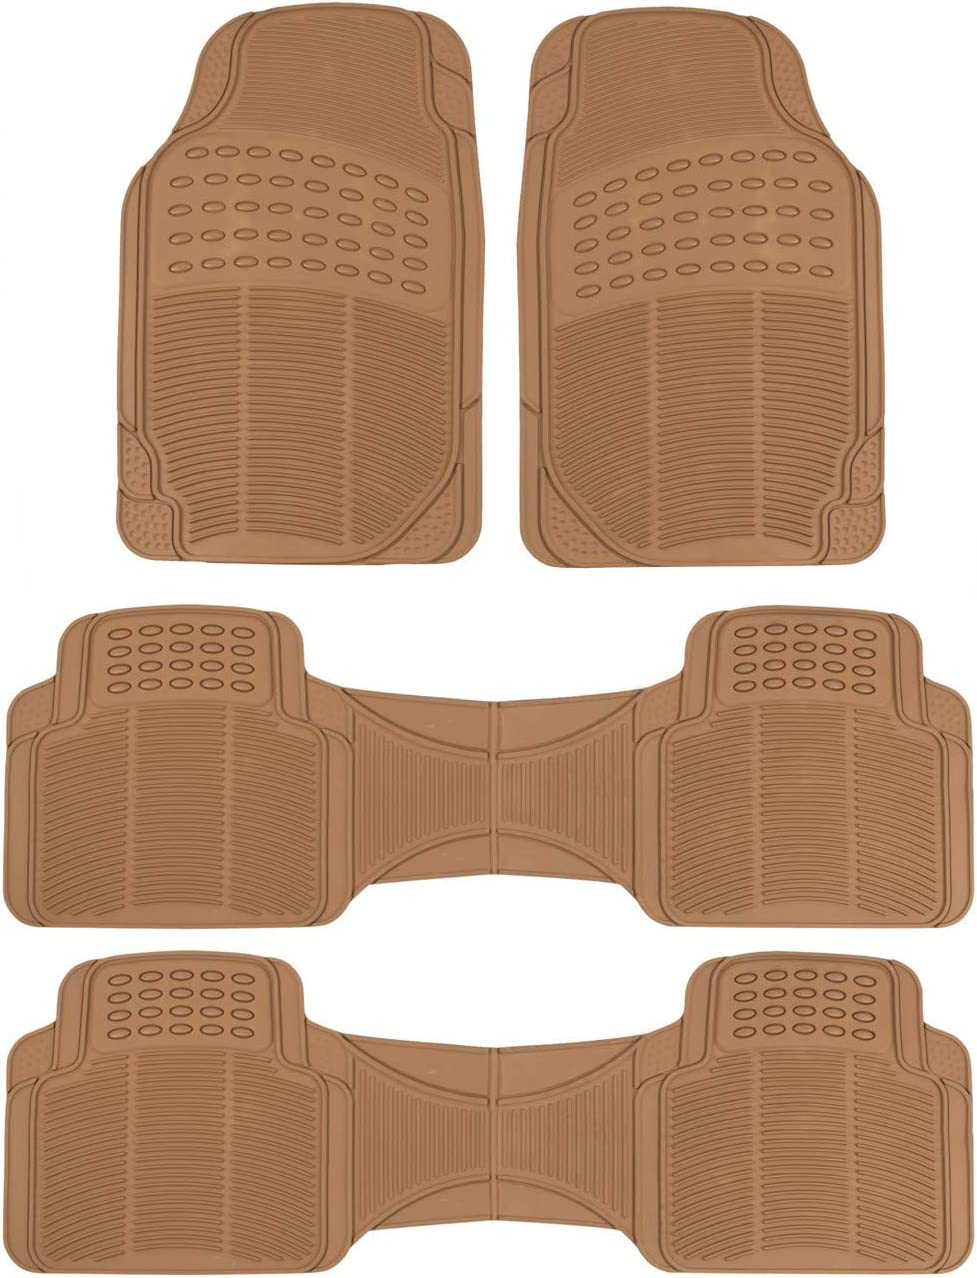 BDK 3Row ProLiner Original Heavy Duty 4pc Front & Rear Rubber Floor Mats for Car SUV Van (for 3 Row Vehicles) - All Weather Protection Universal Fit (Gray)